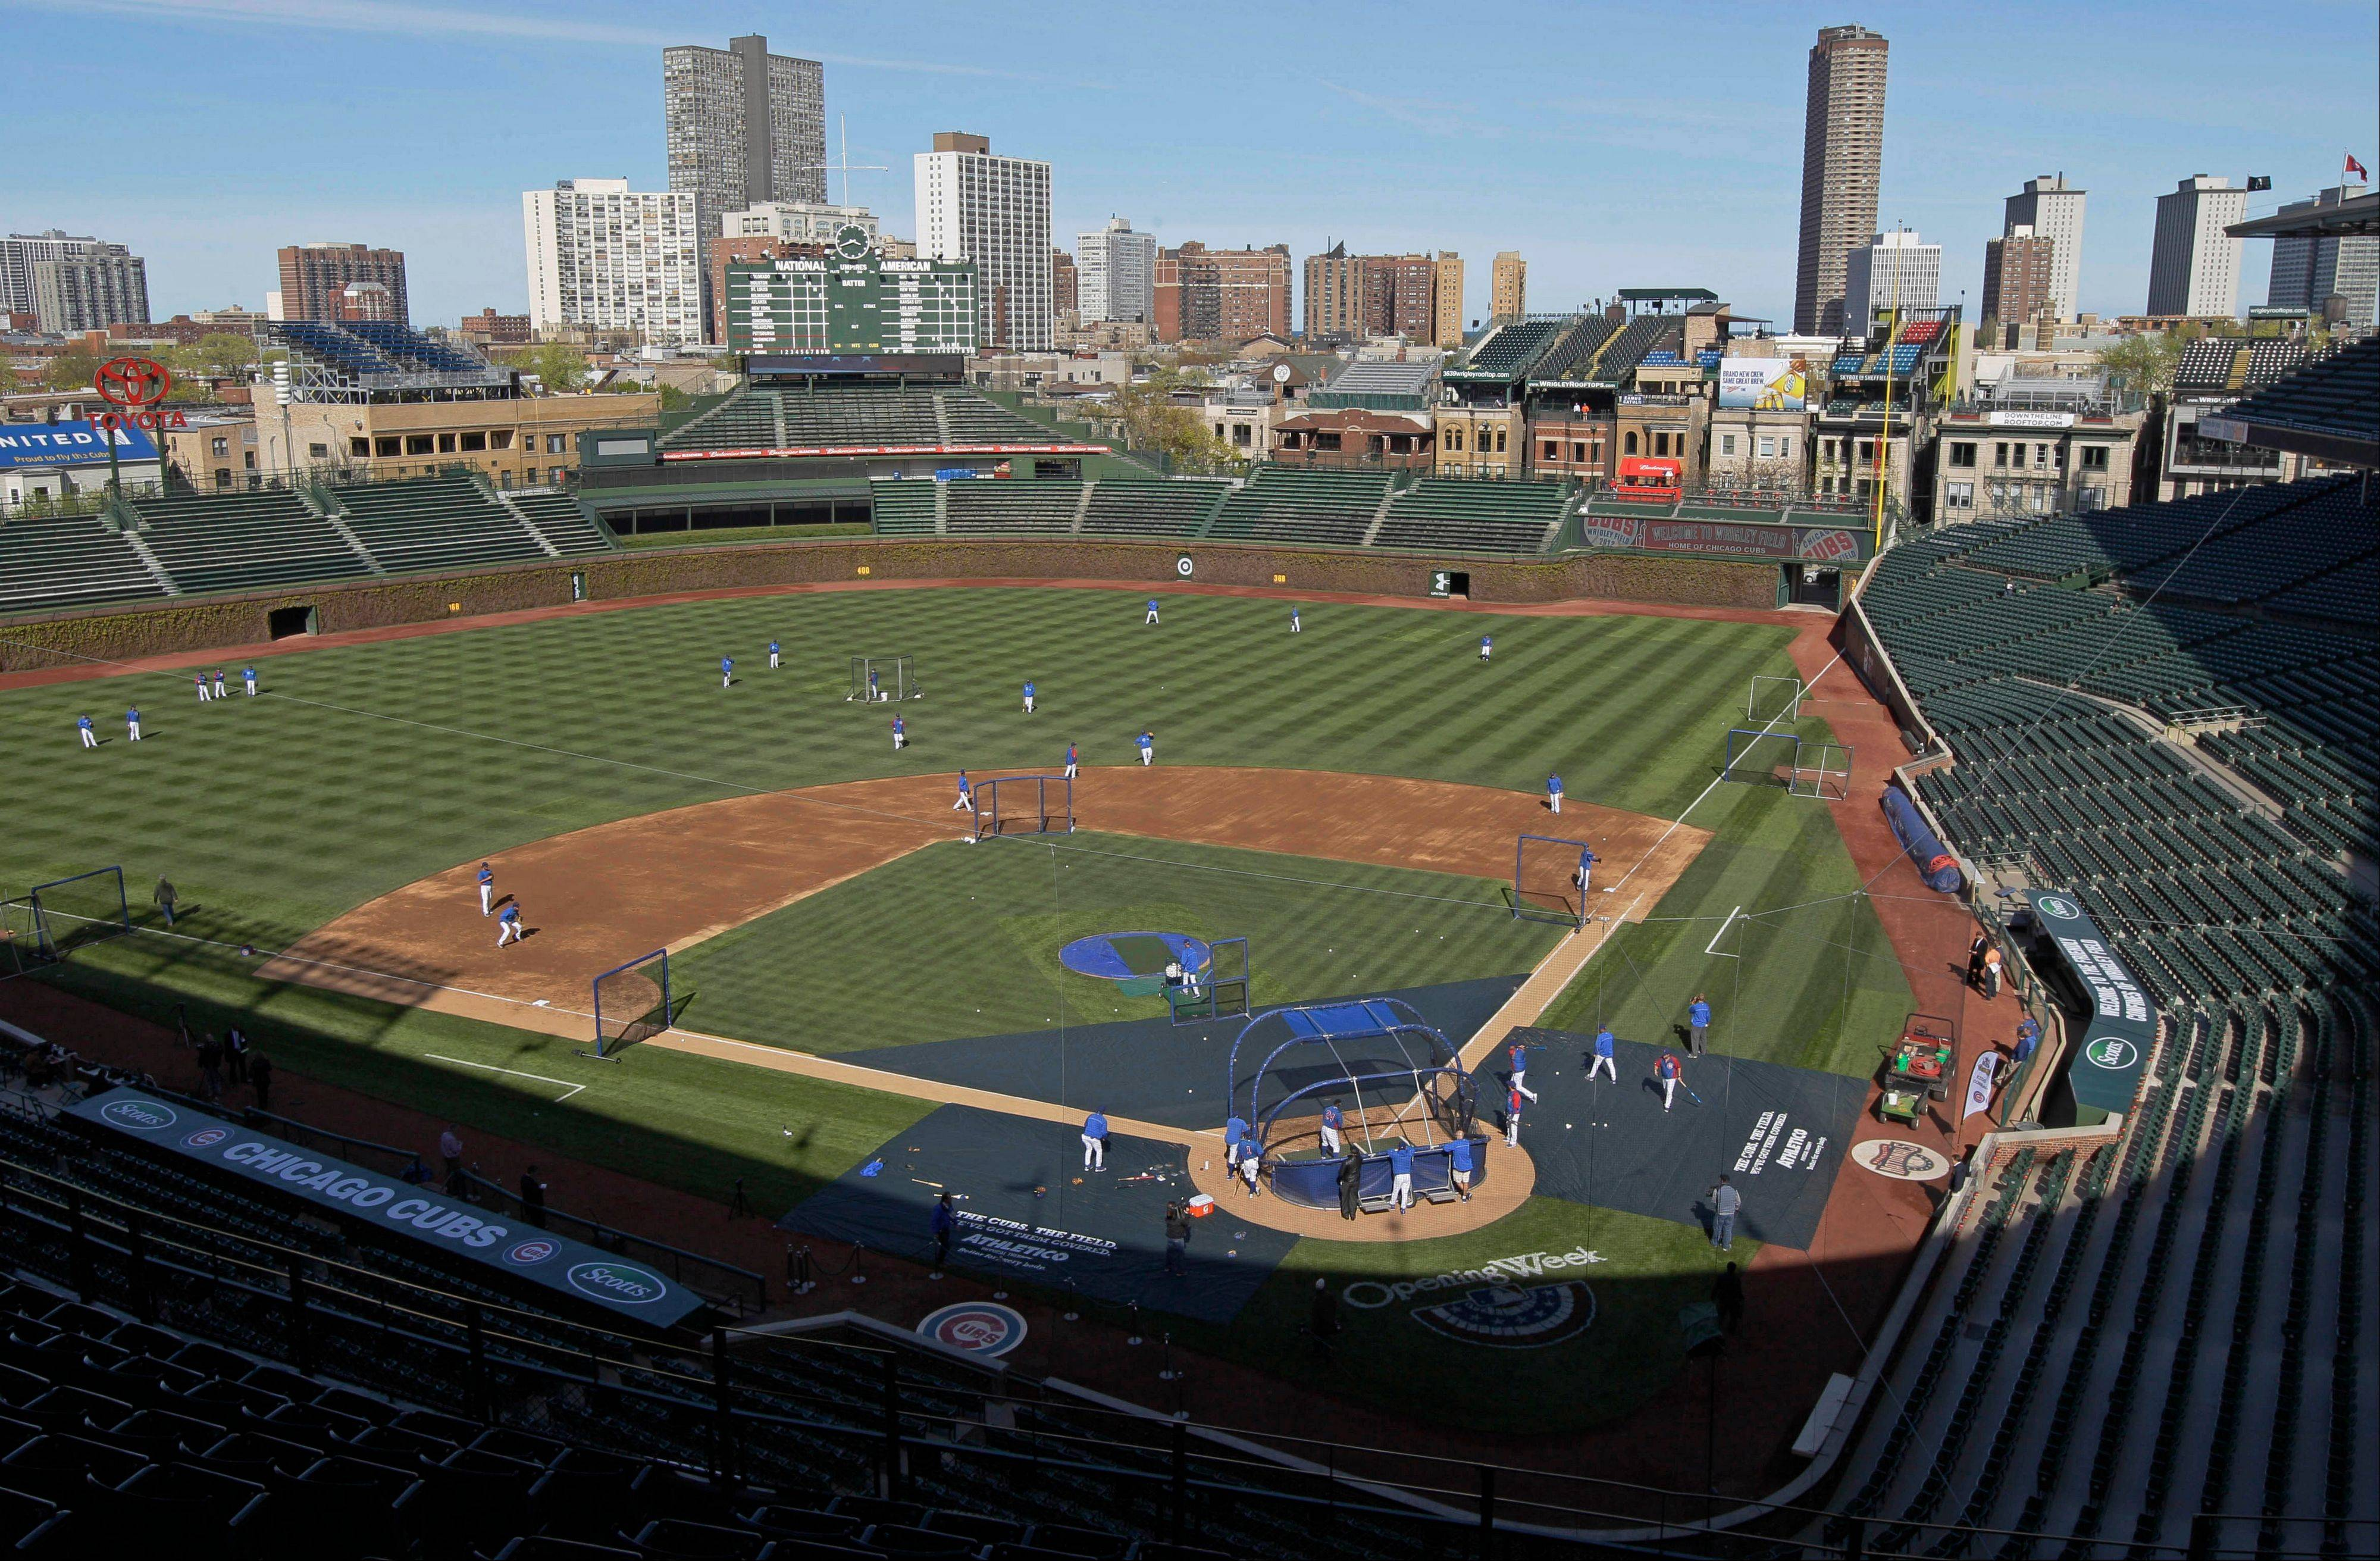 Kasper: Something special about Wrigley Field